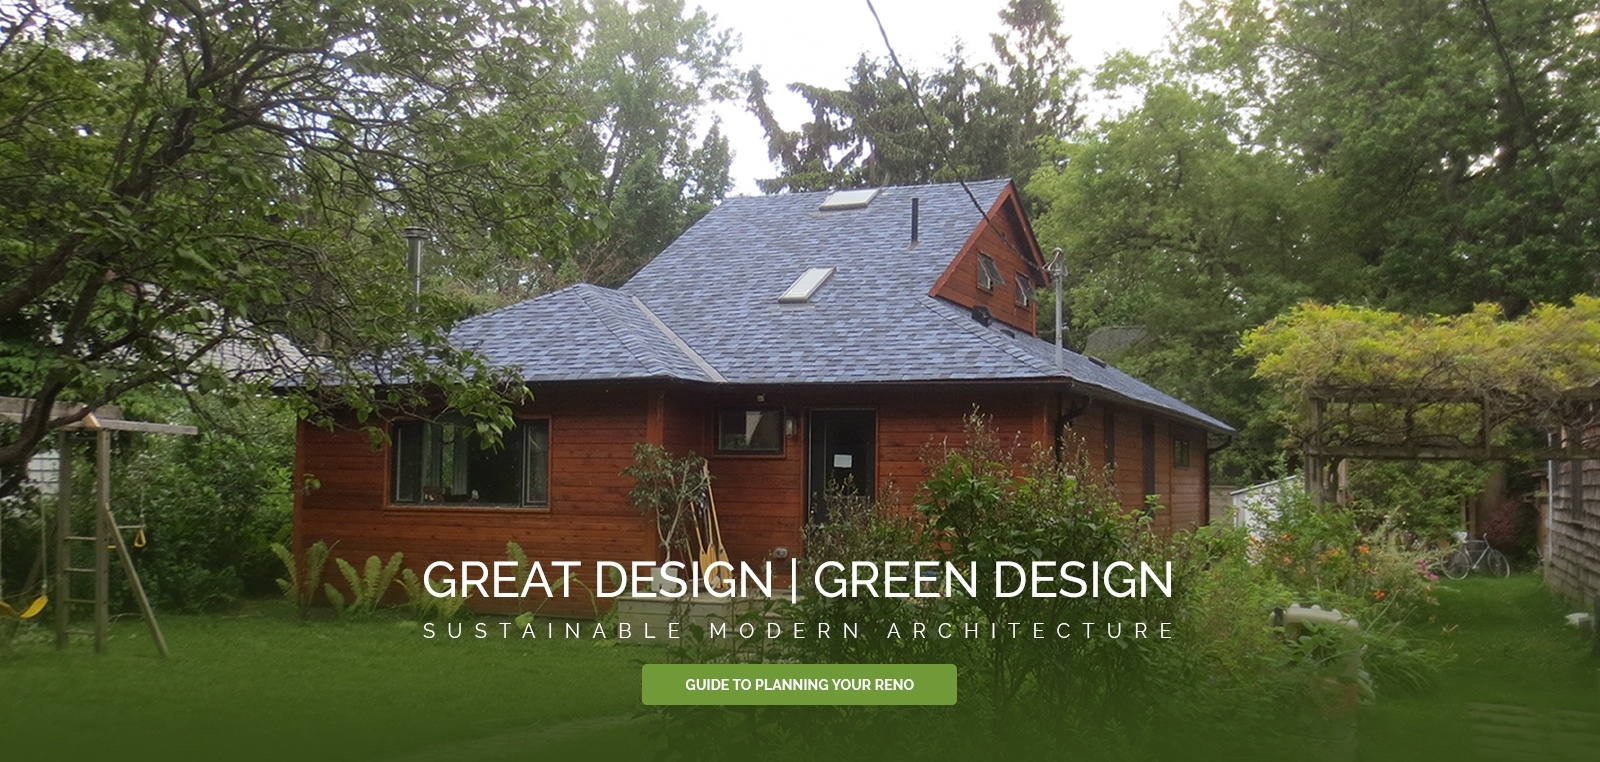 Green Renovations Architects Toronto - The Architect Builders Collaborative Inc.